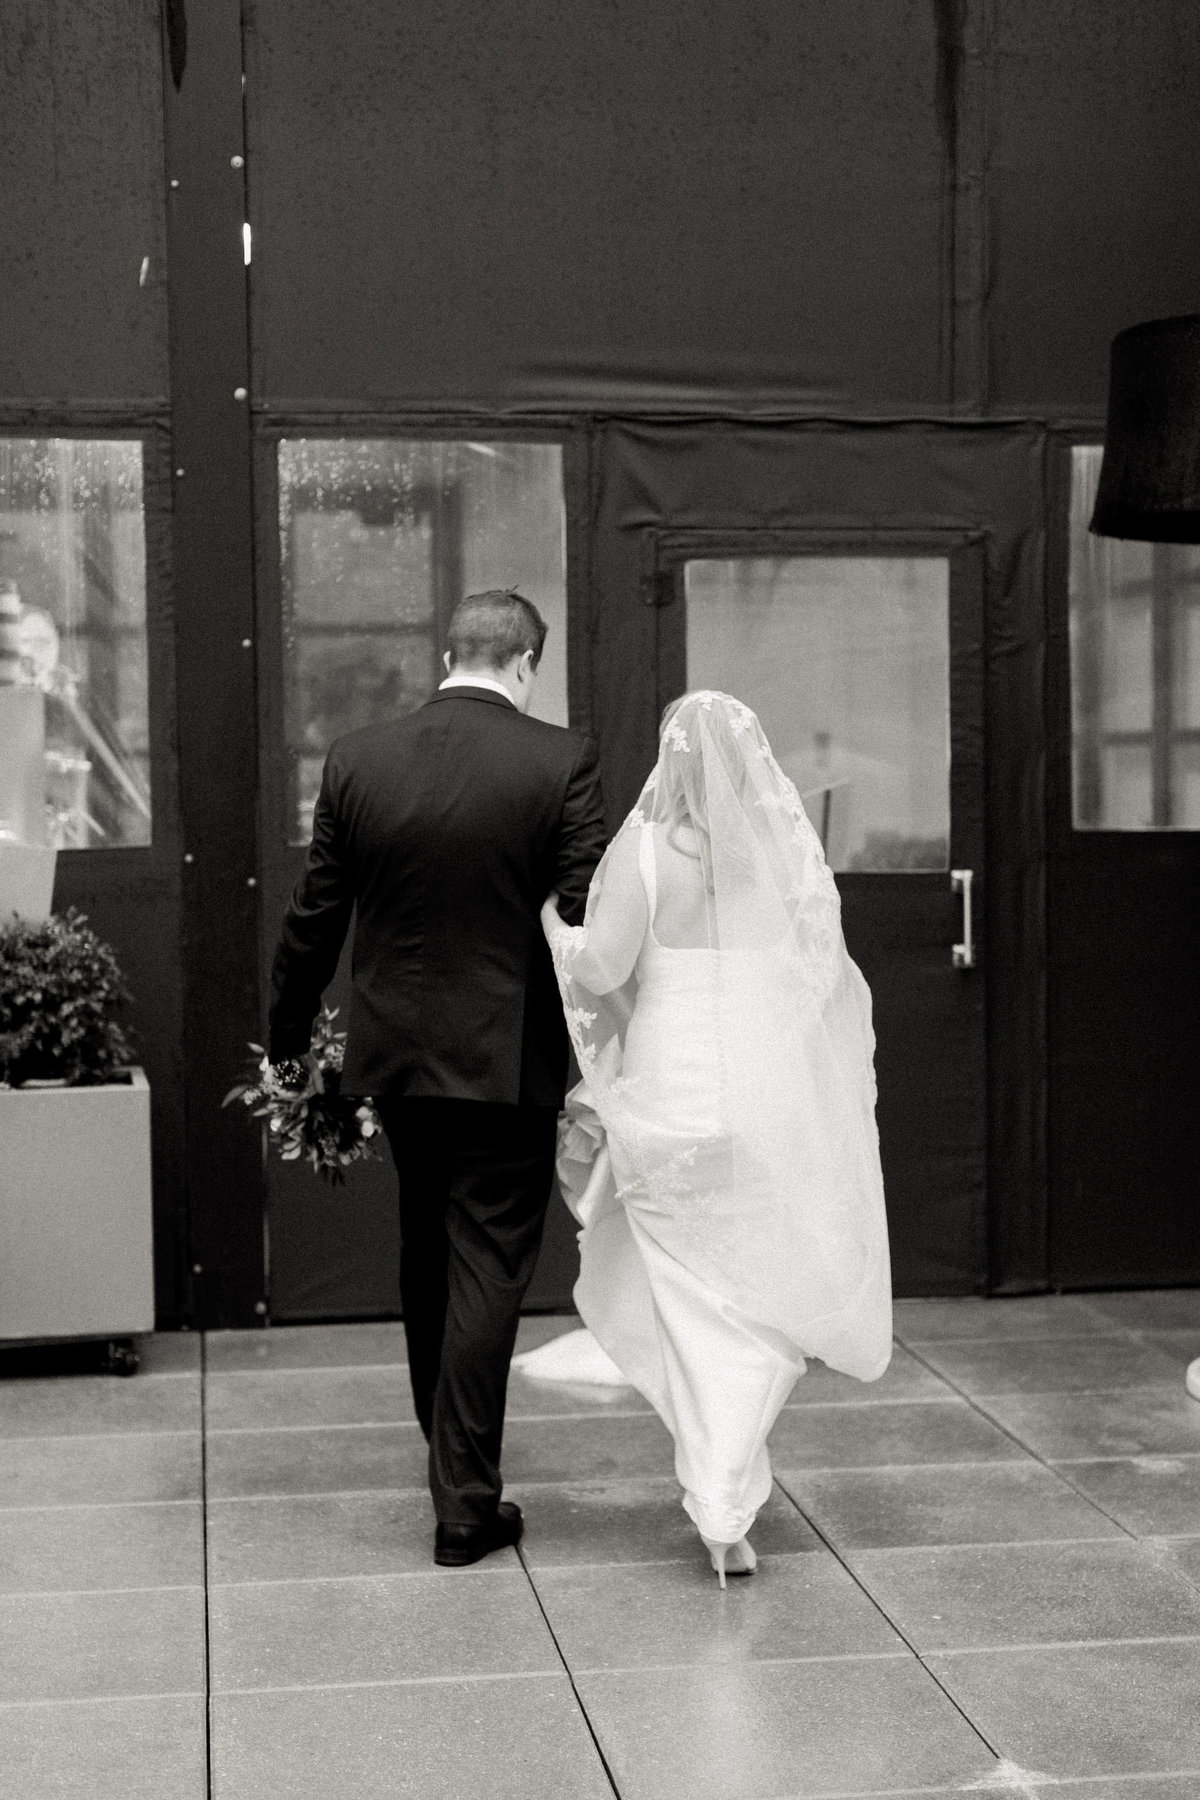 TiffaneyChildsPhotography-ChicagoWeddingPhotographer-Kimberly+Jimmy-ChicagoRenaissanceHotelWedding-BridalPortraits-67